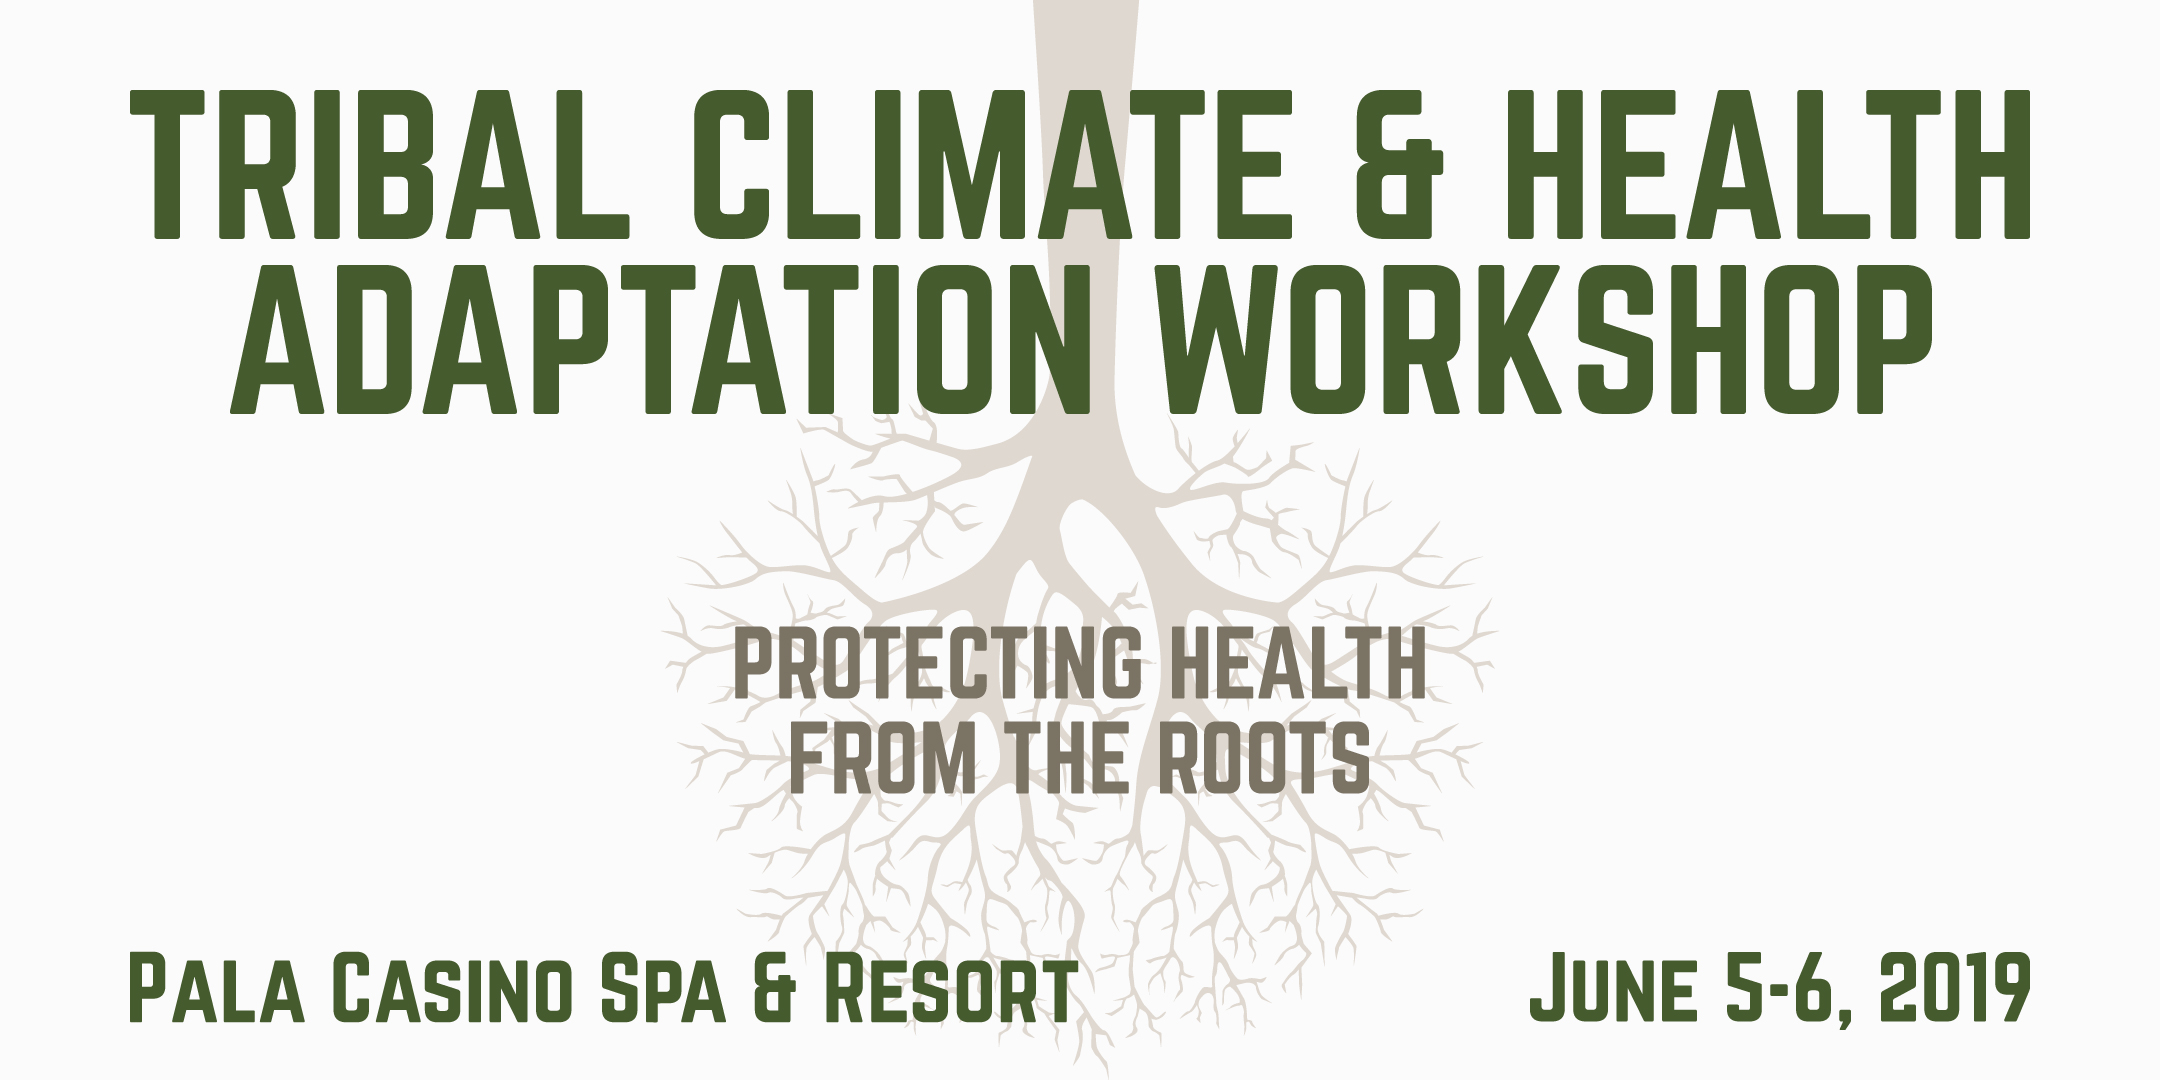 Tribal Climate & Health Adaptation Workshop – June 5-6th